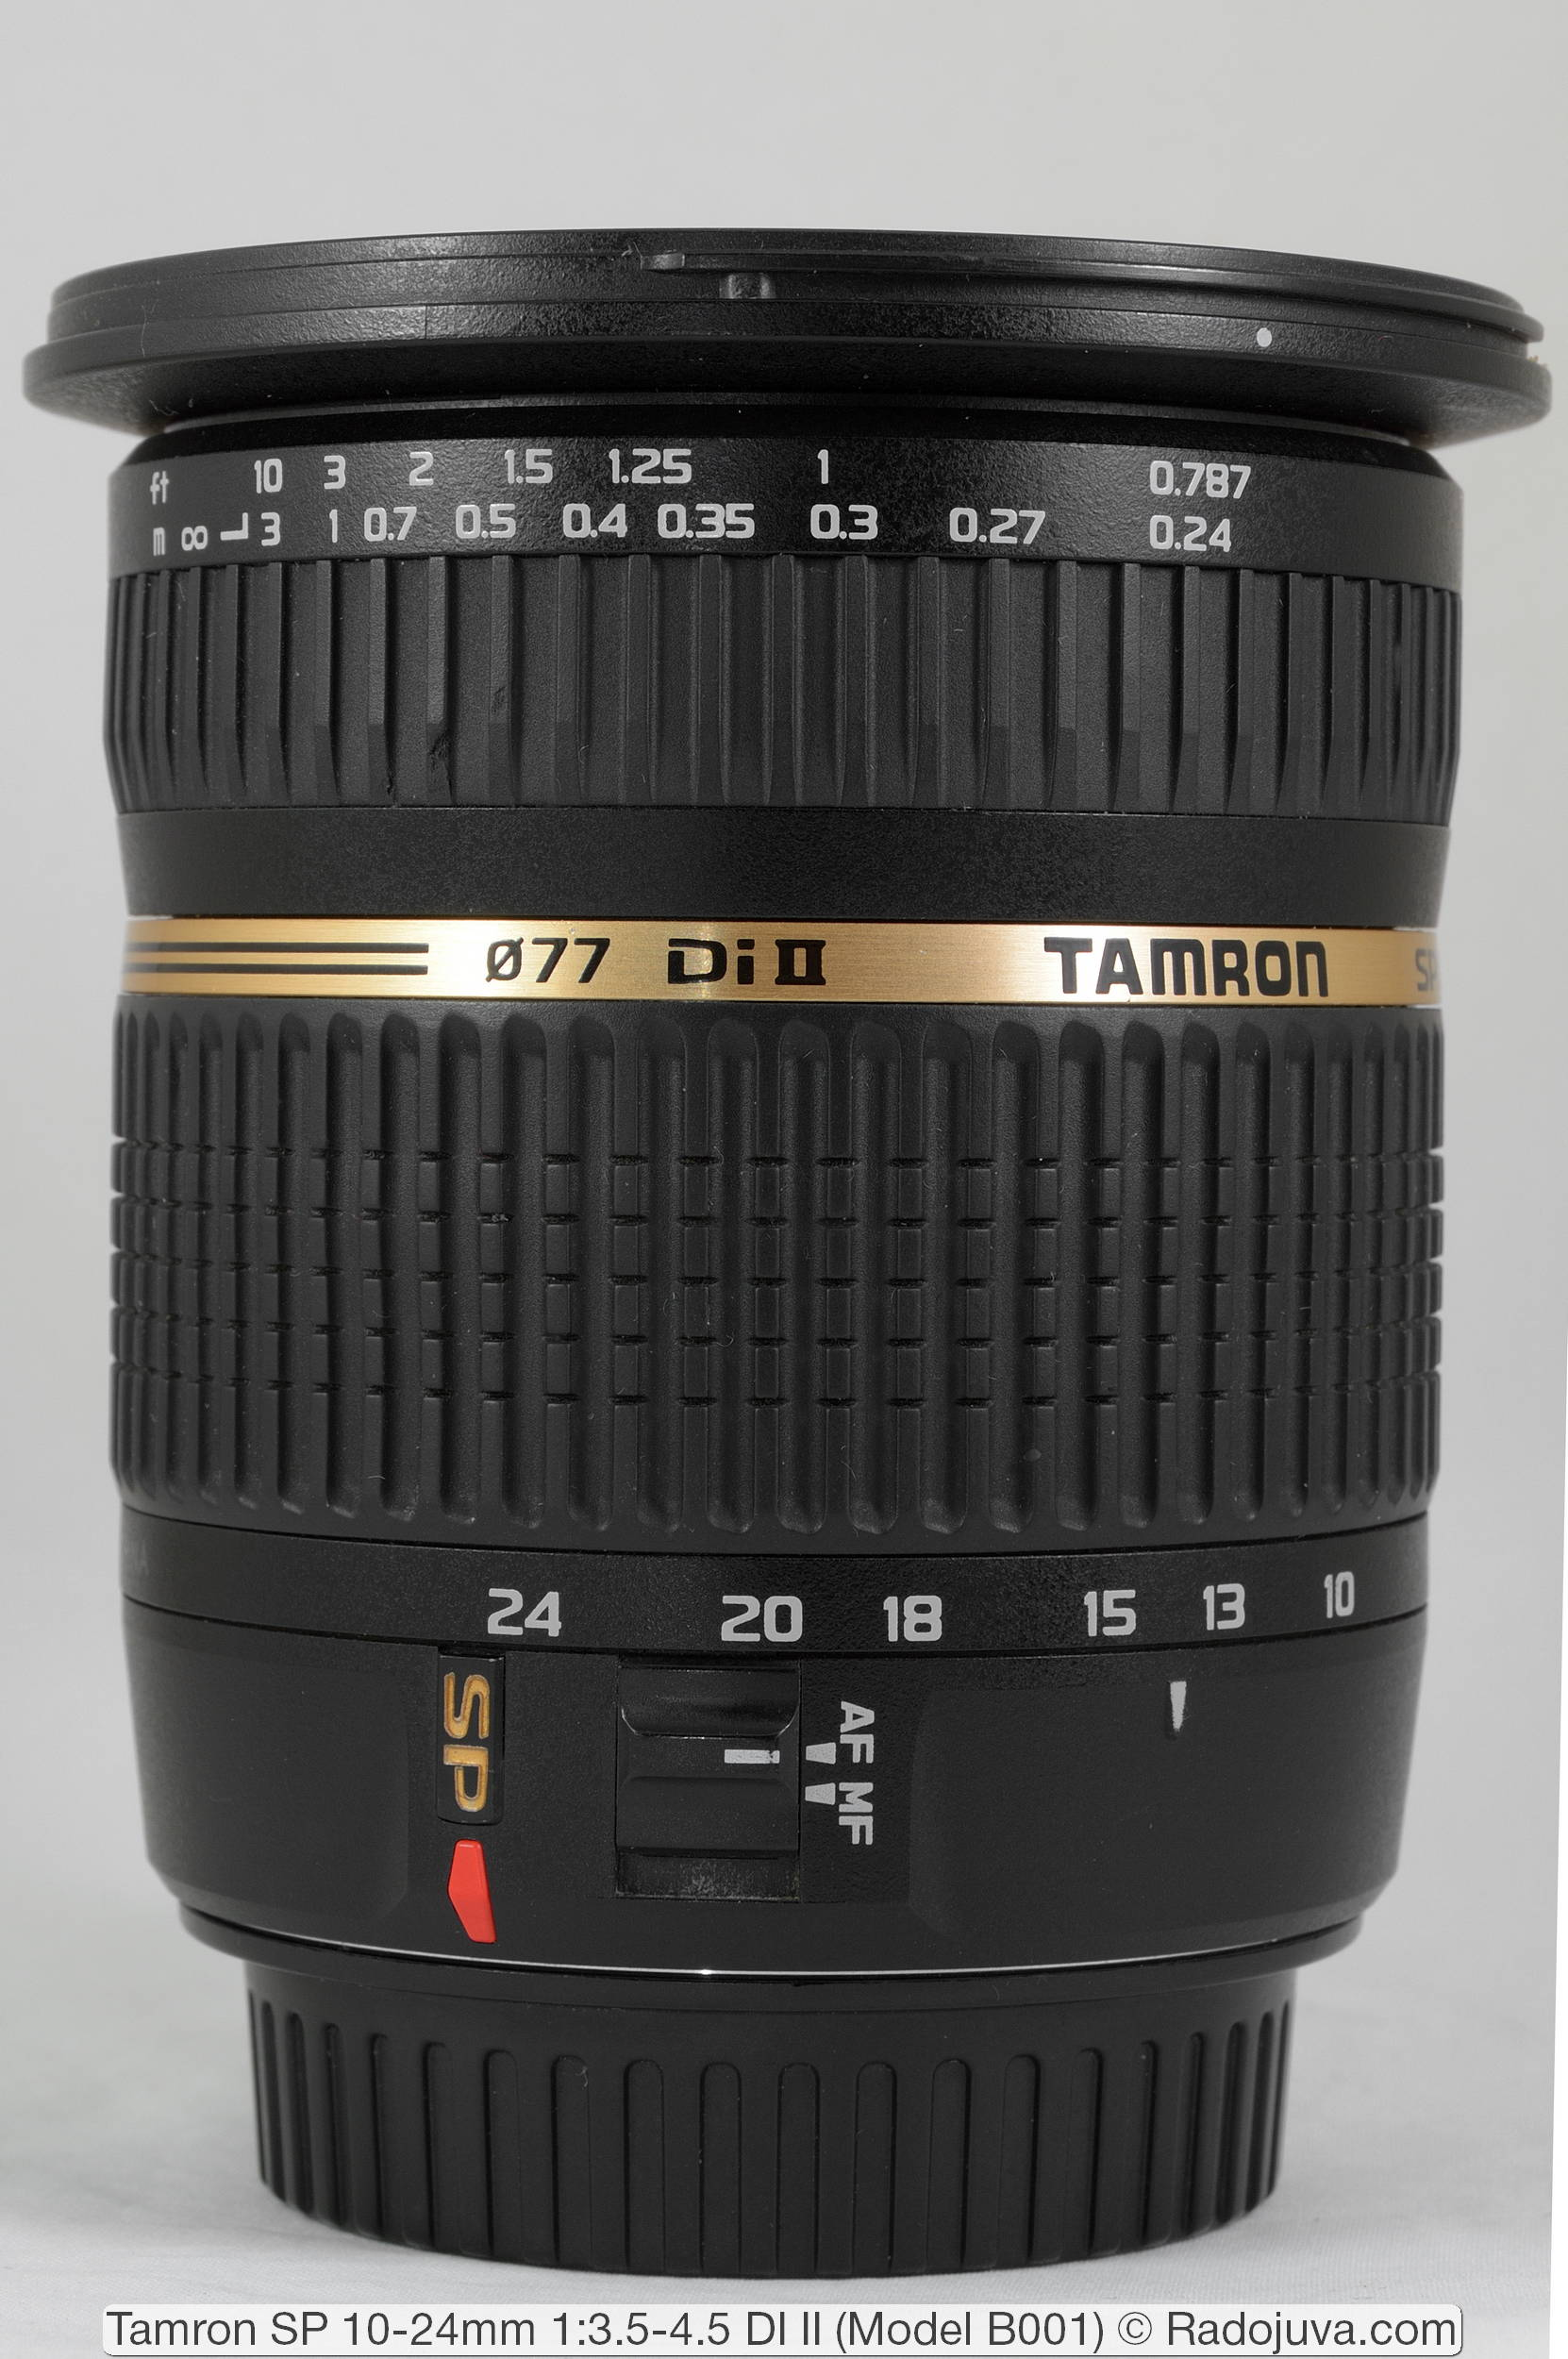 Tamron SP 10-24mm 1:3.5-4.5 DI II (Model B001)